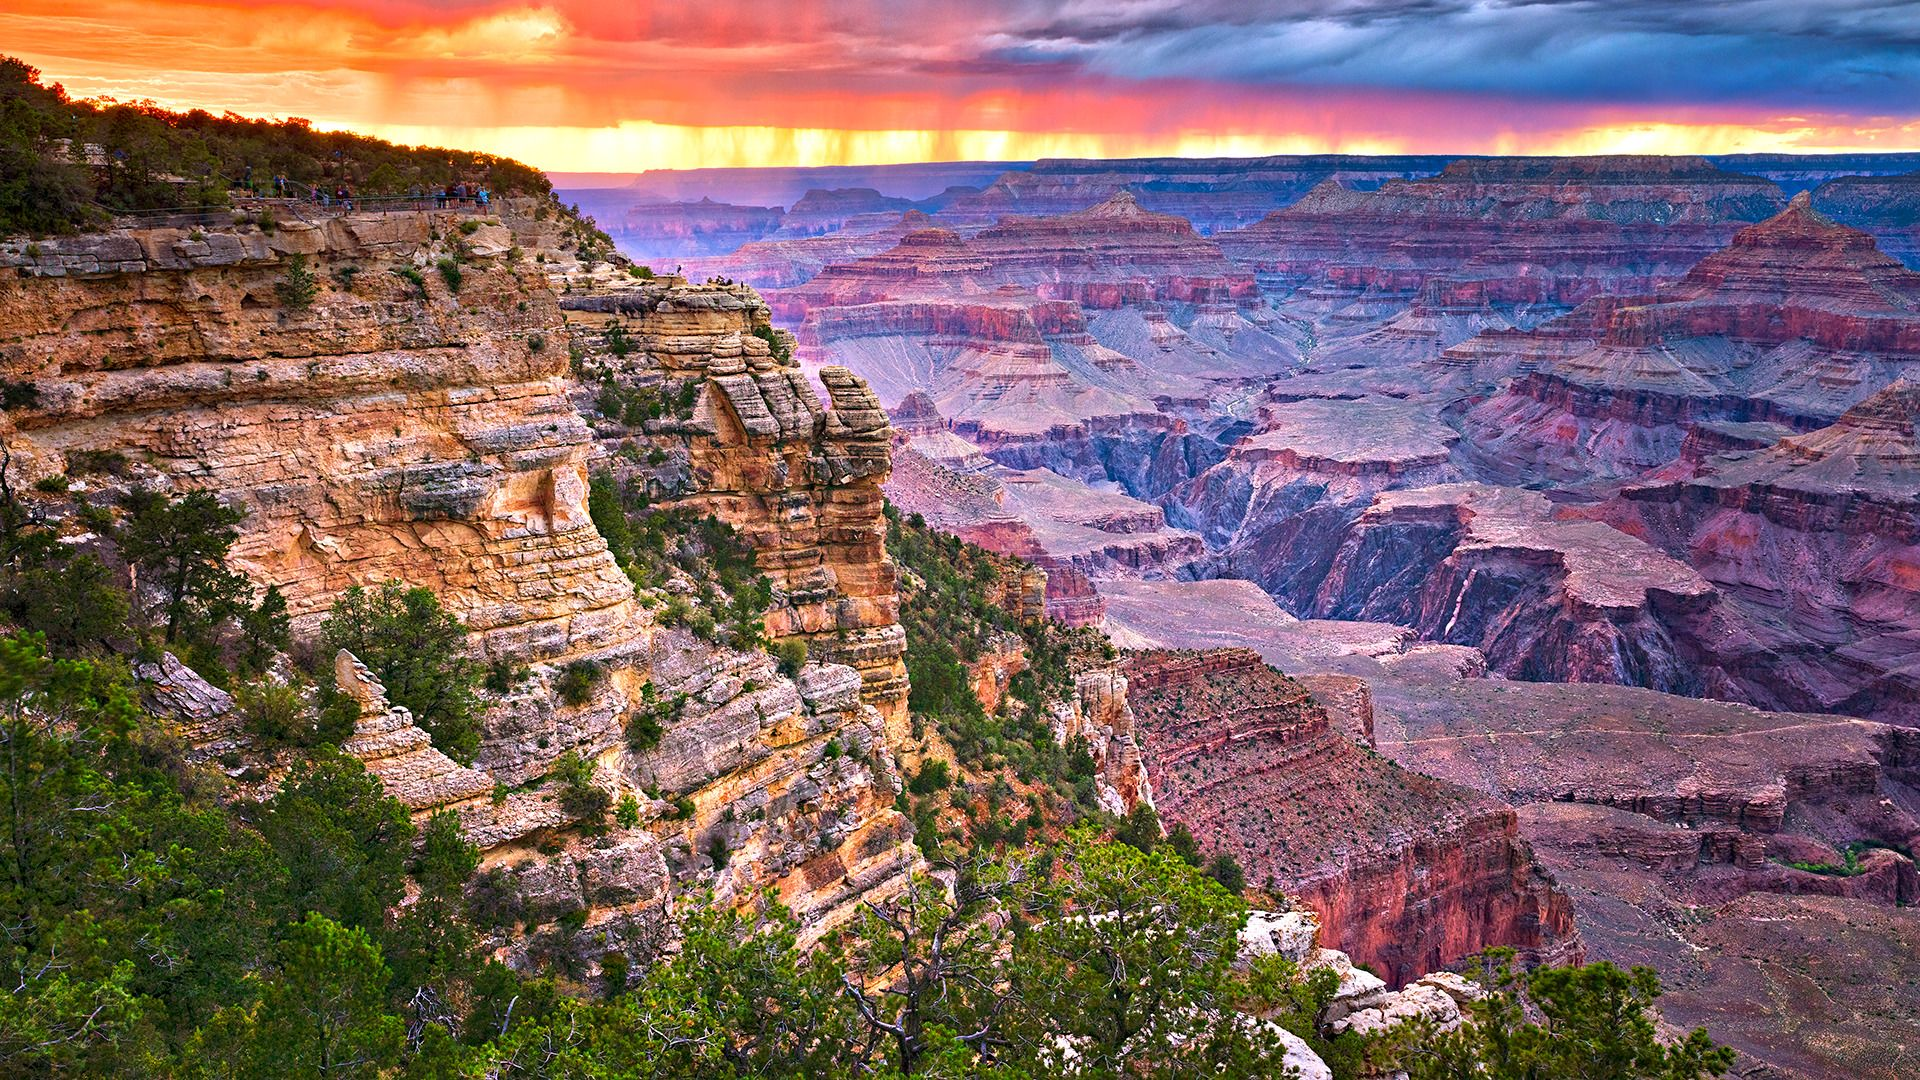 Sunset views of the Grand Canyon South Rim